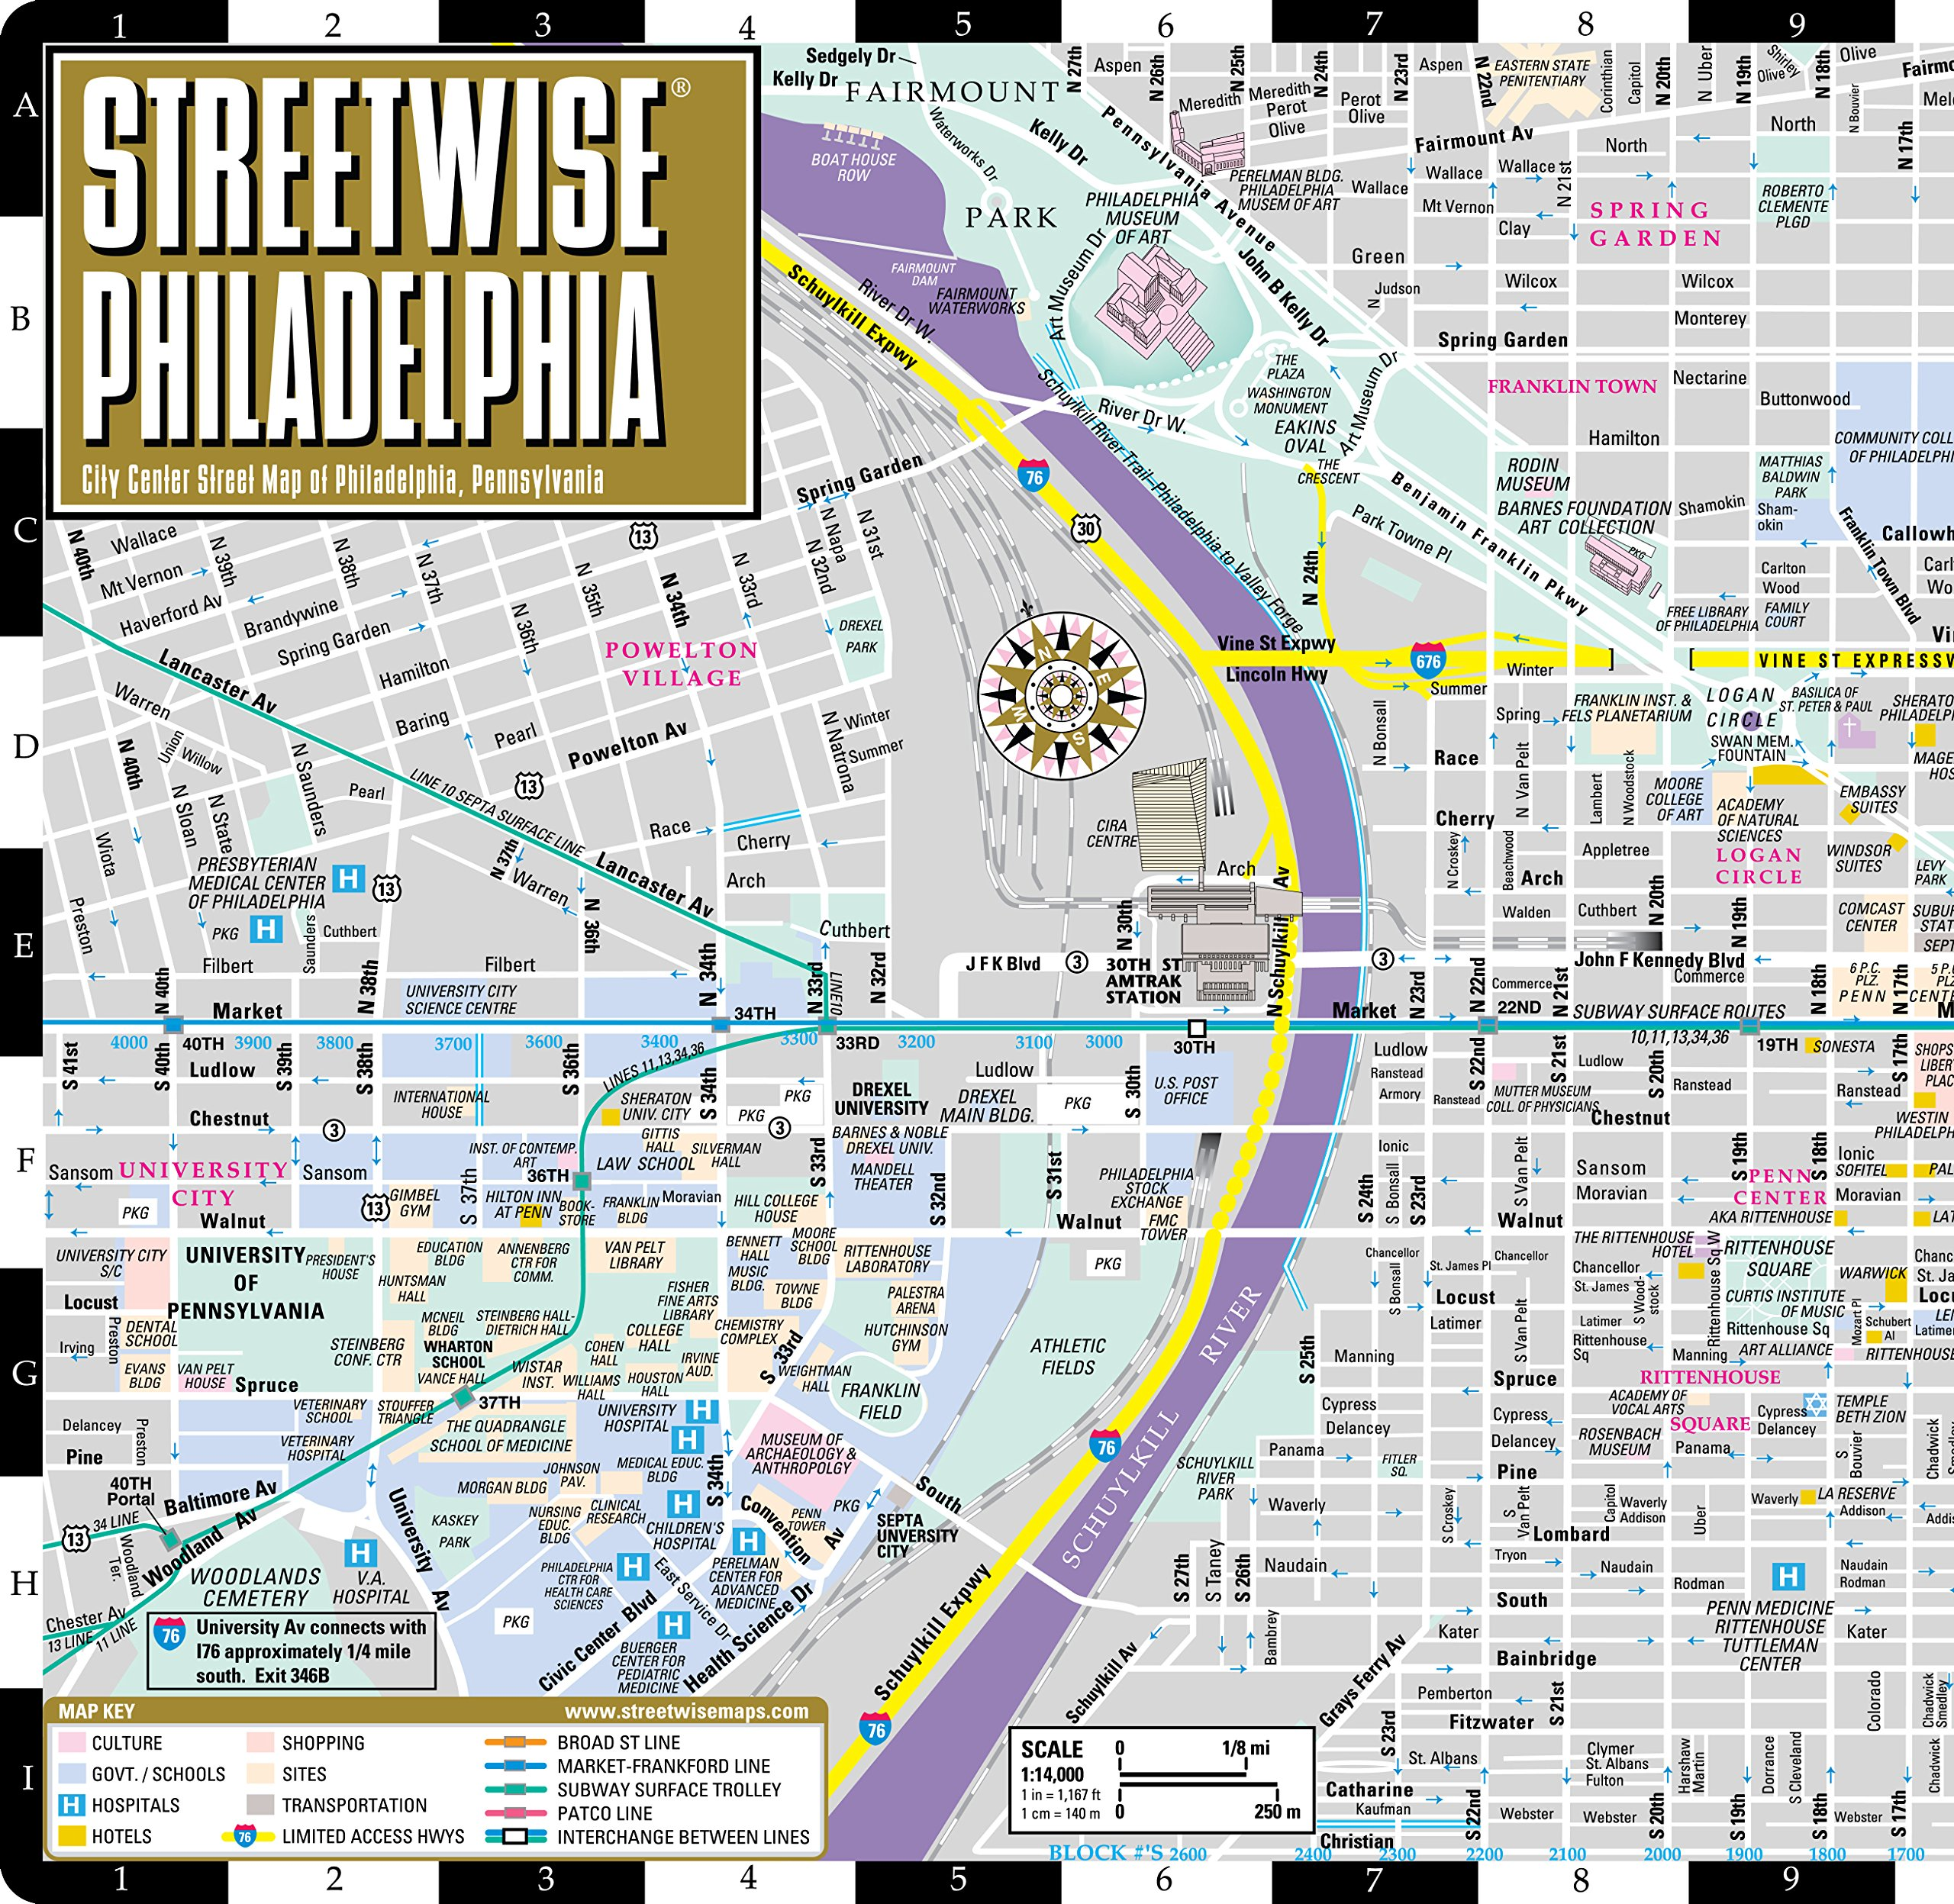 Streetwise Philadelphia Map - Laminated City Center Street Map of ...